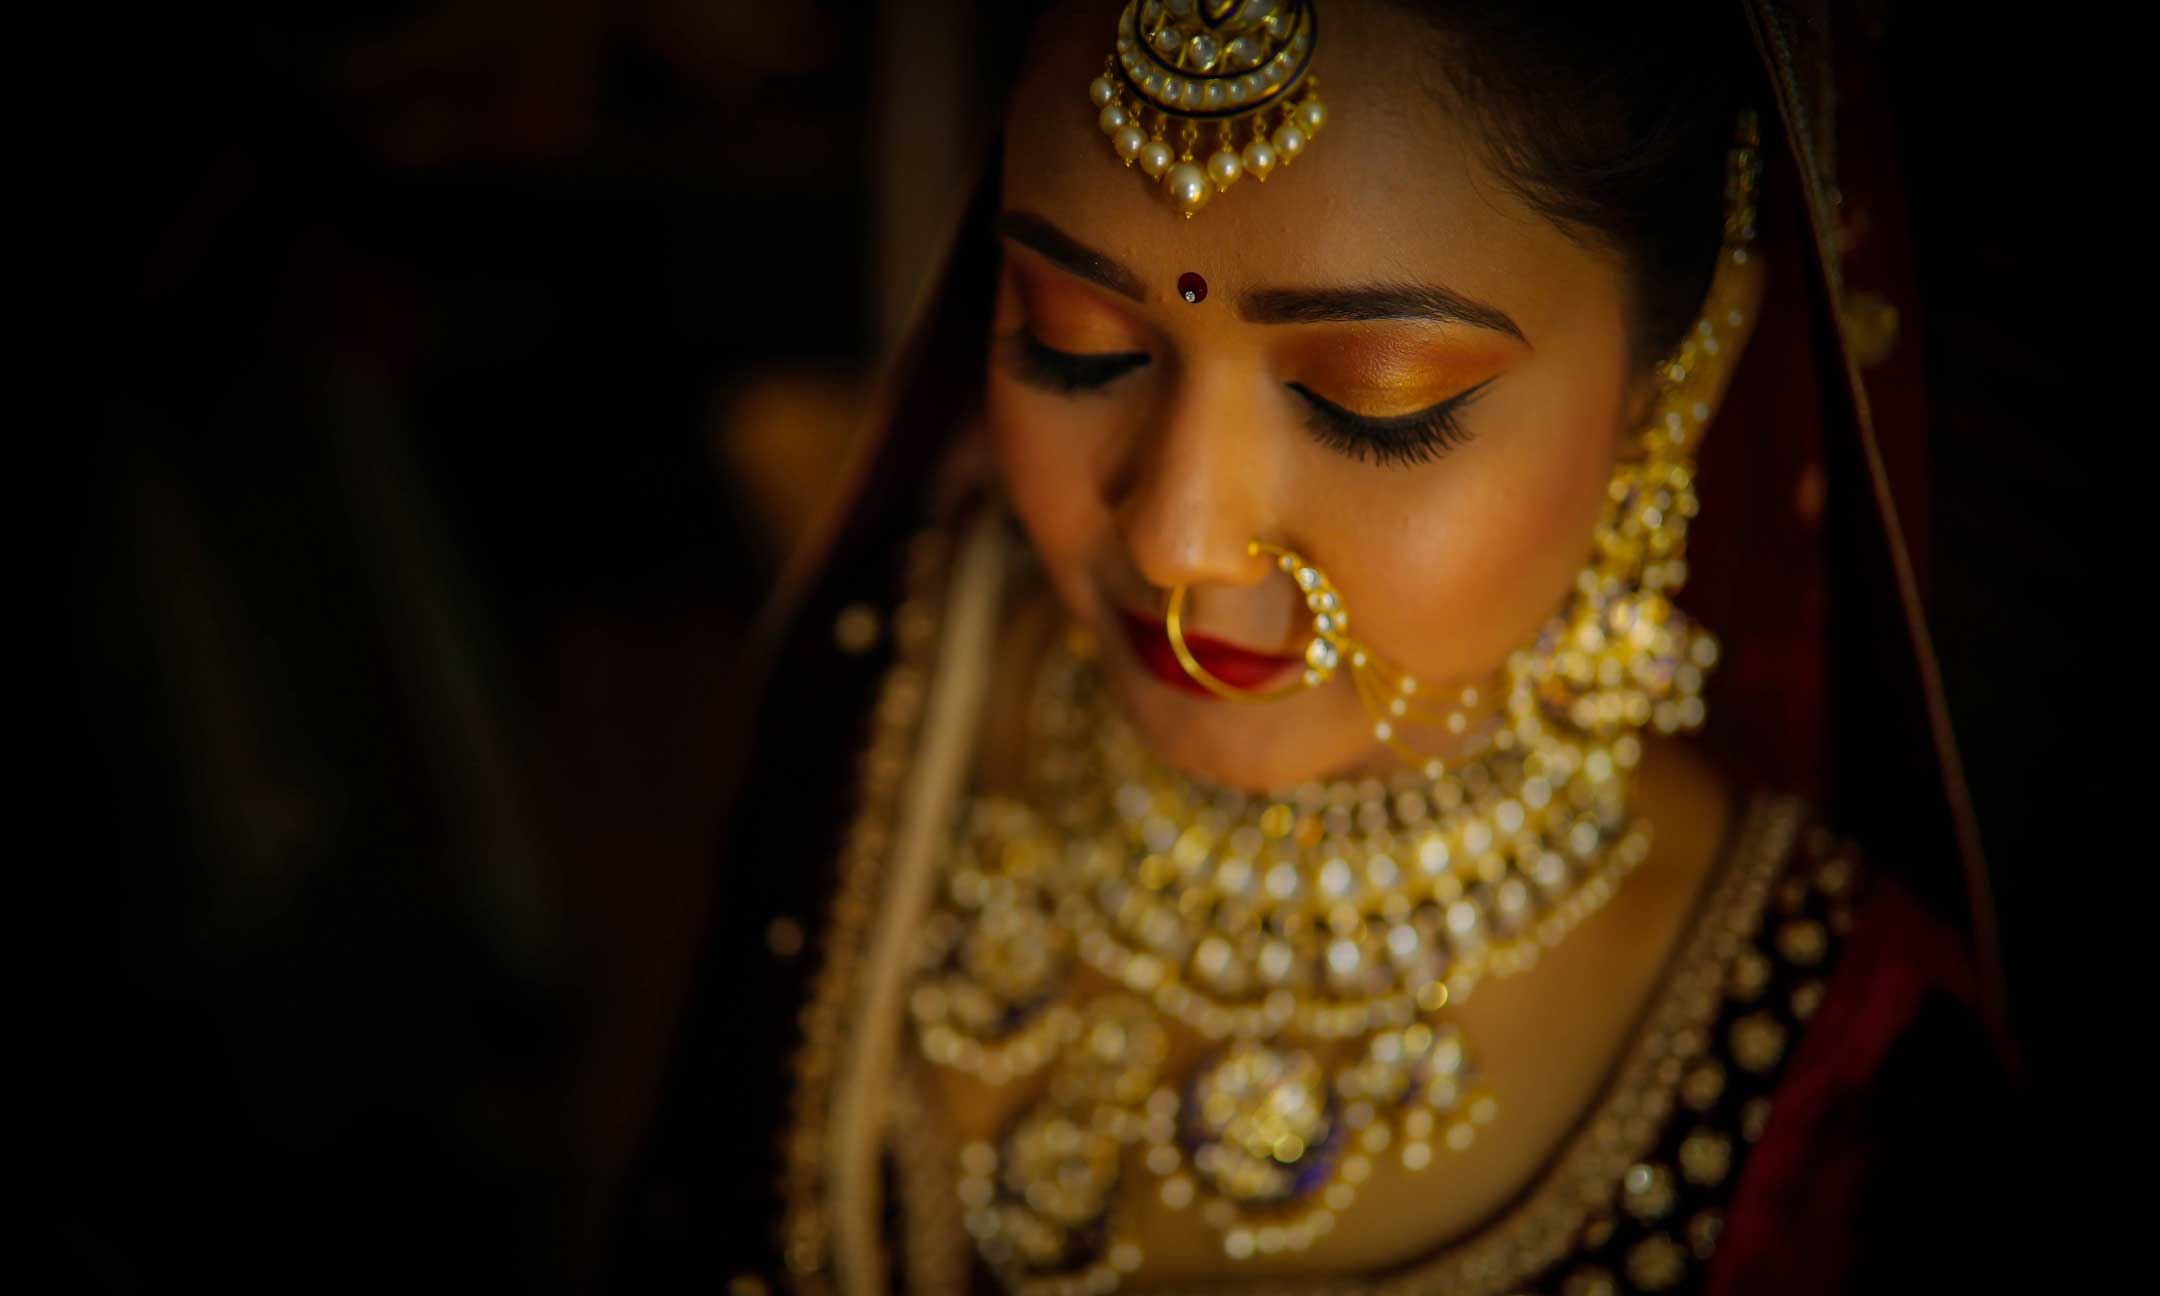 pre wedding photography packages preet vihar